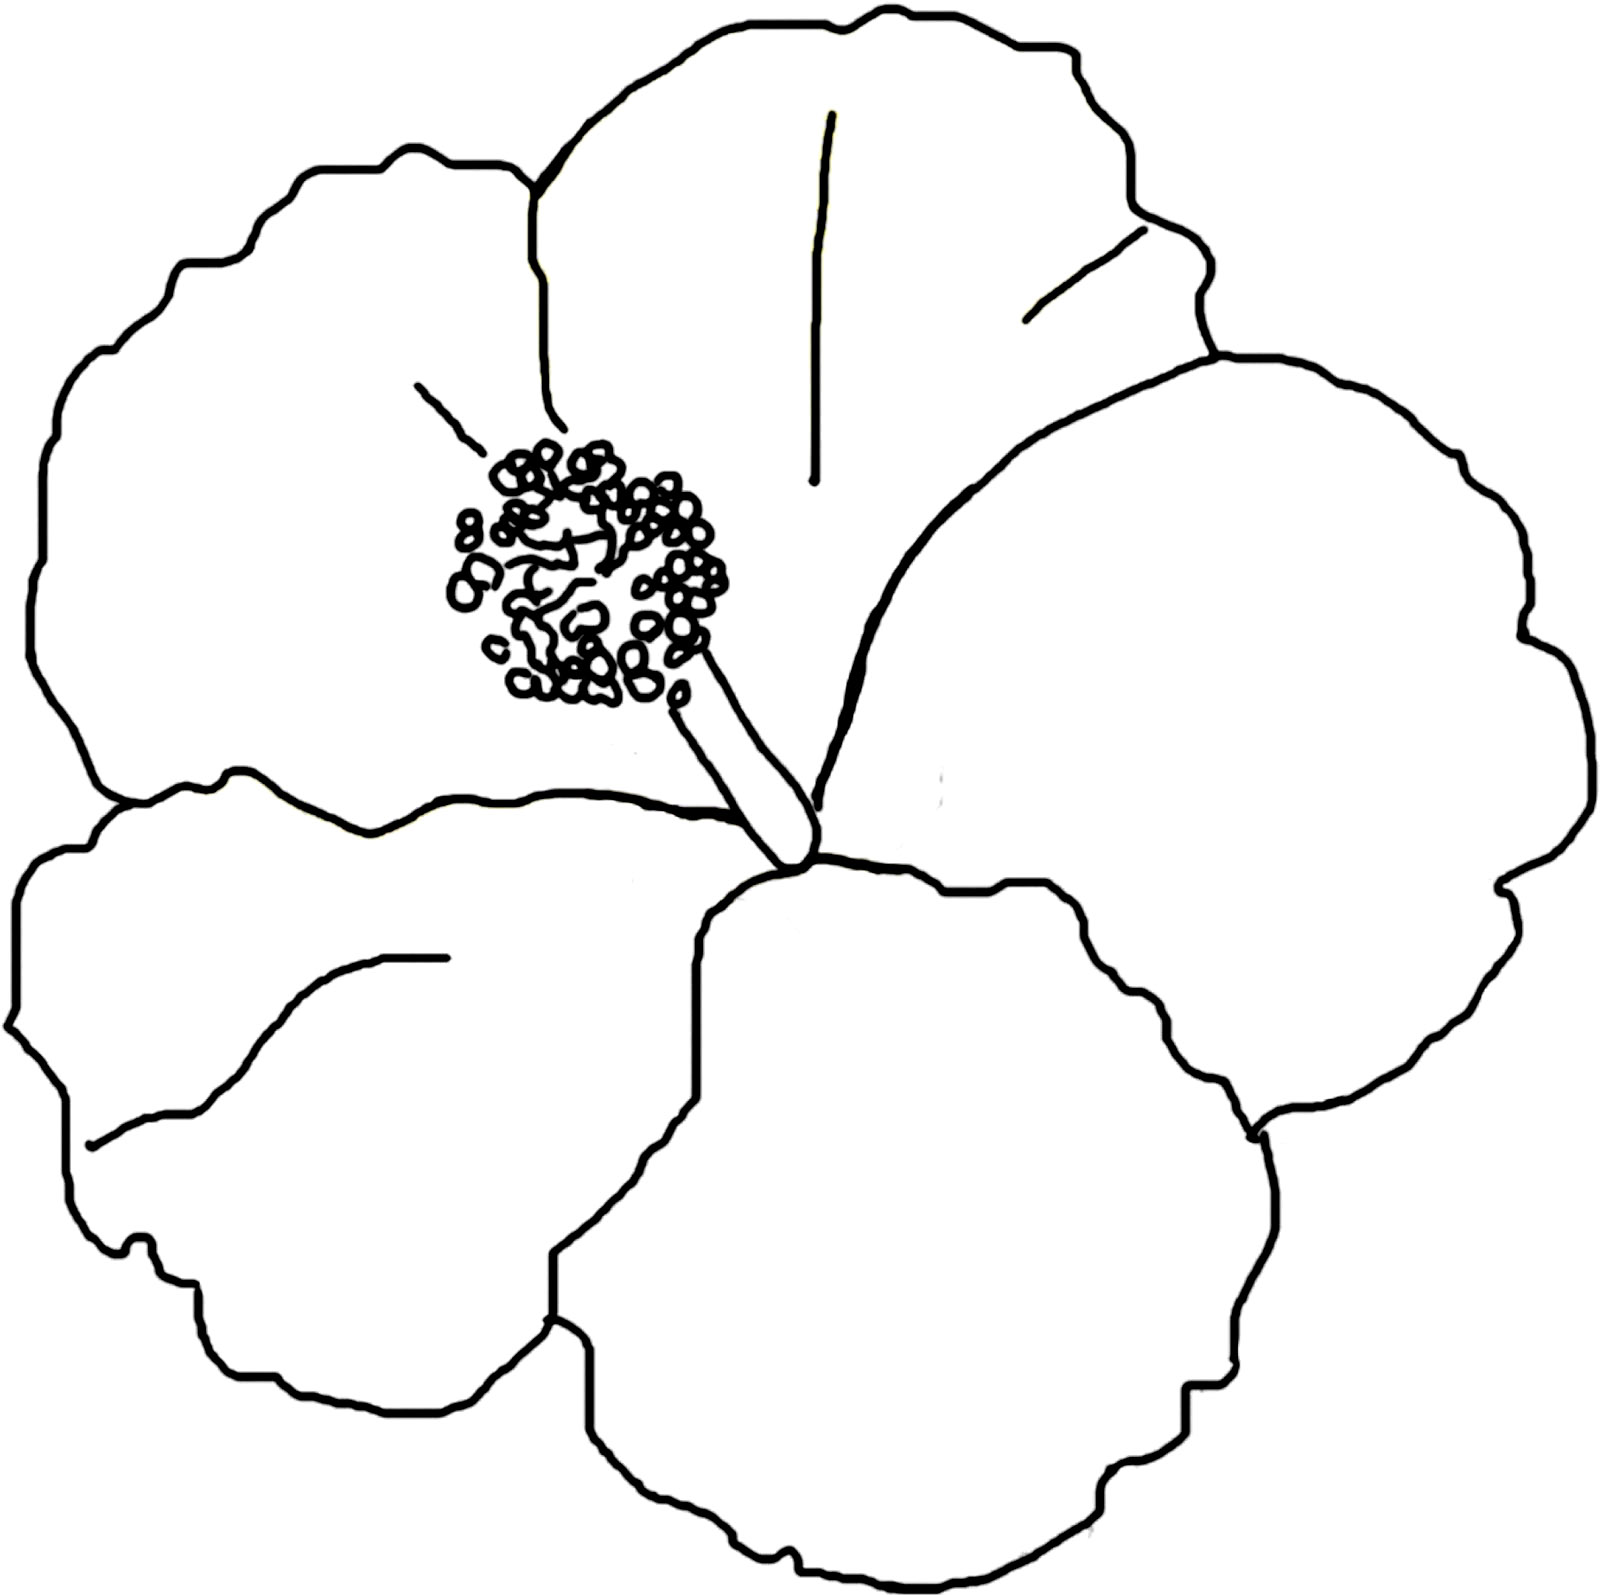 Free Printable Hibiscus Coloring Pages For Kids Colouring Pages Printable